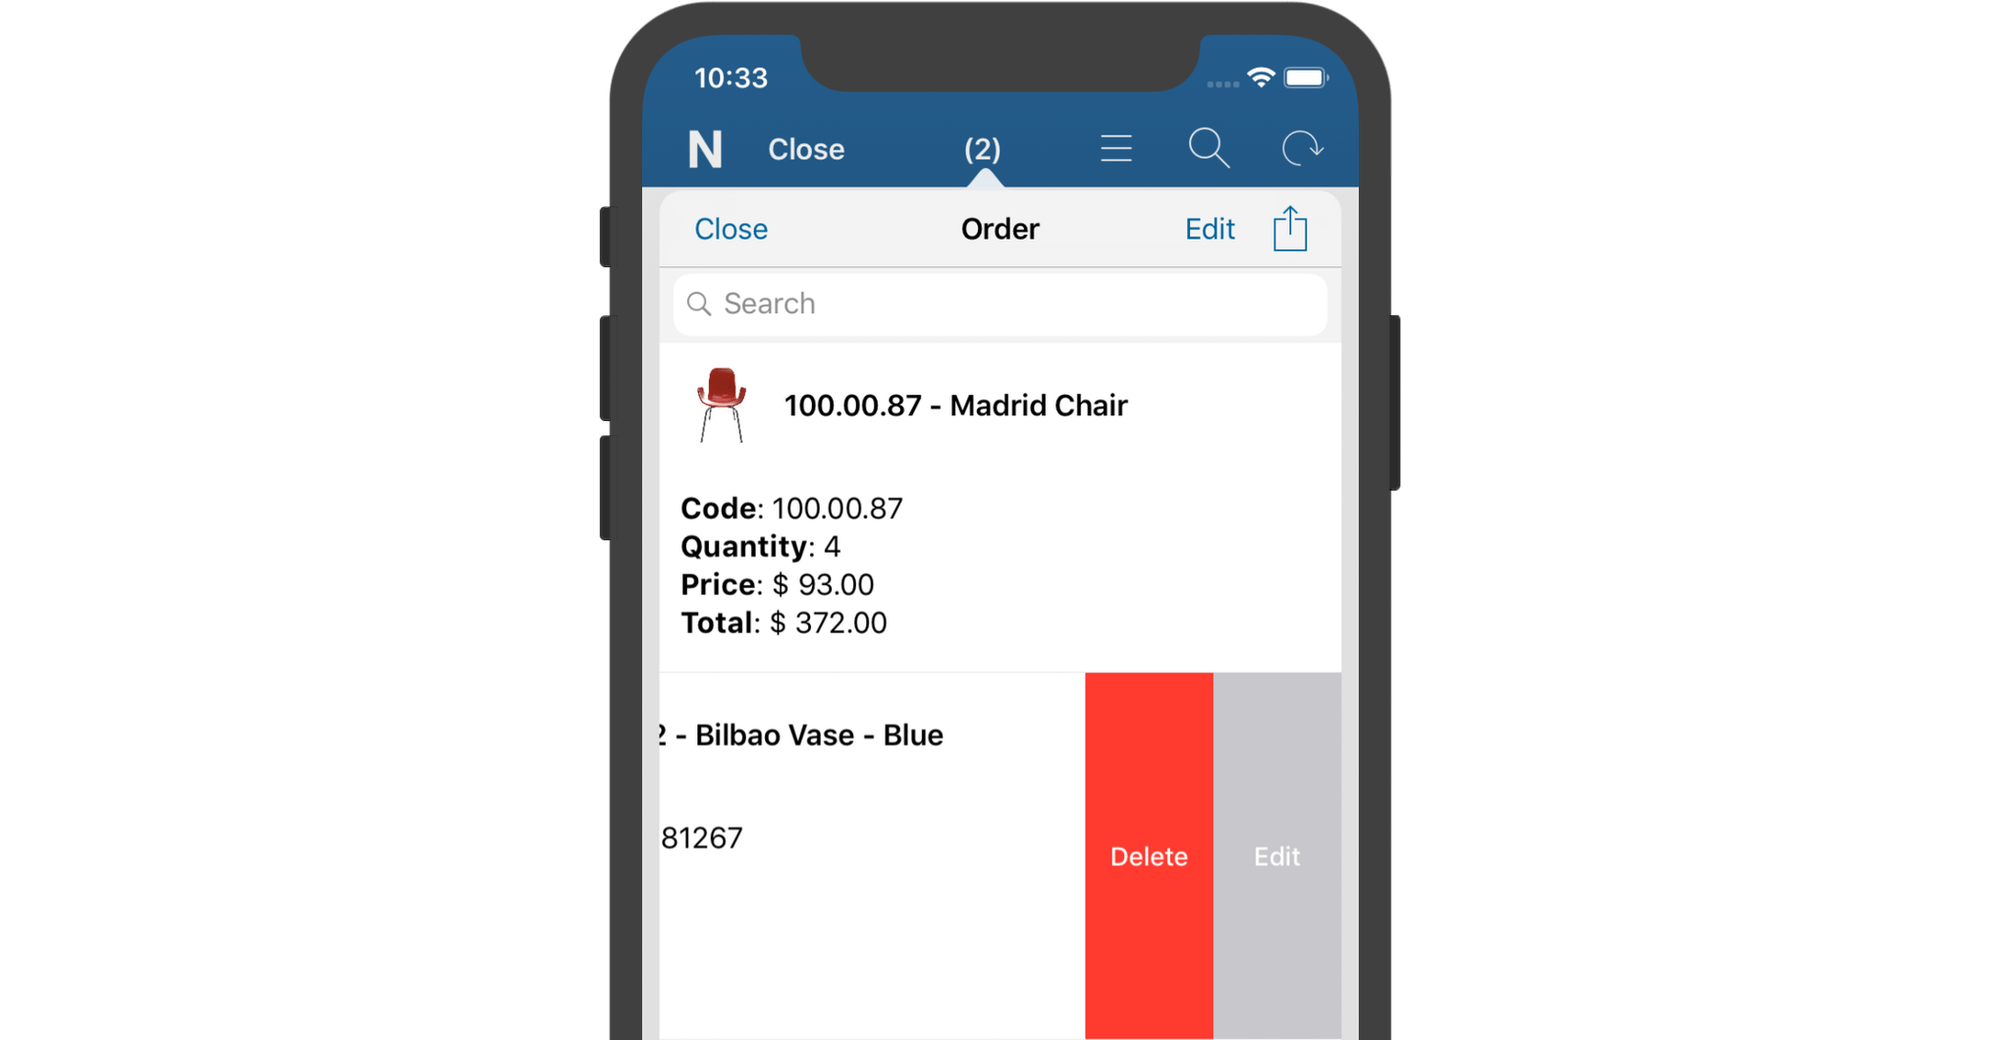 Quick Product Actions in Orders or Favorites